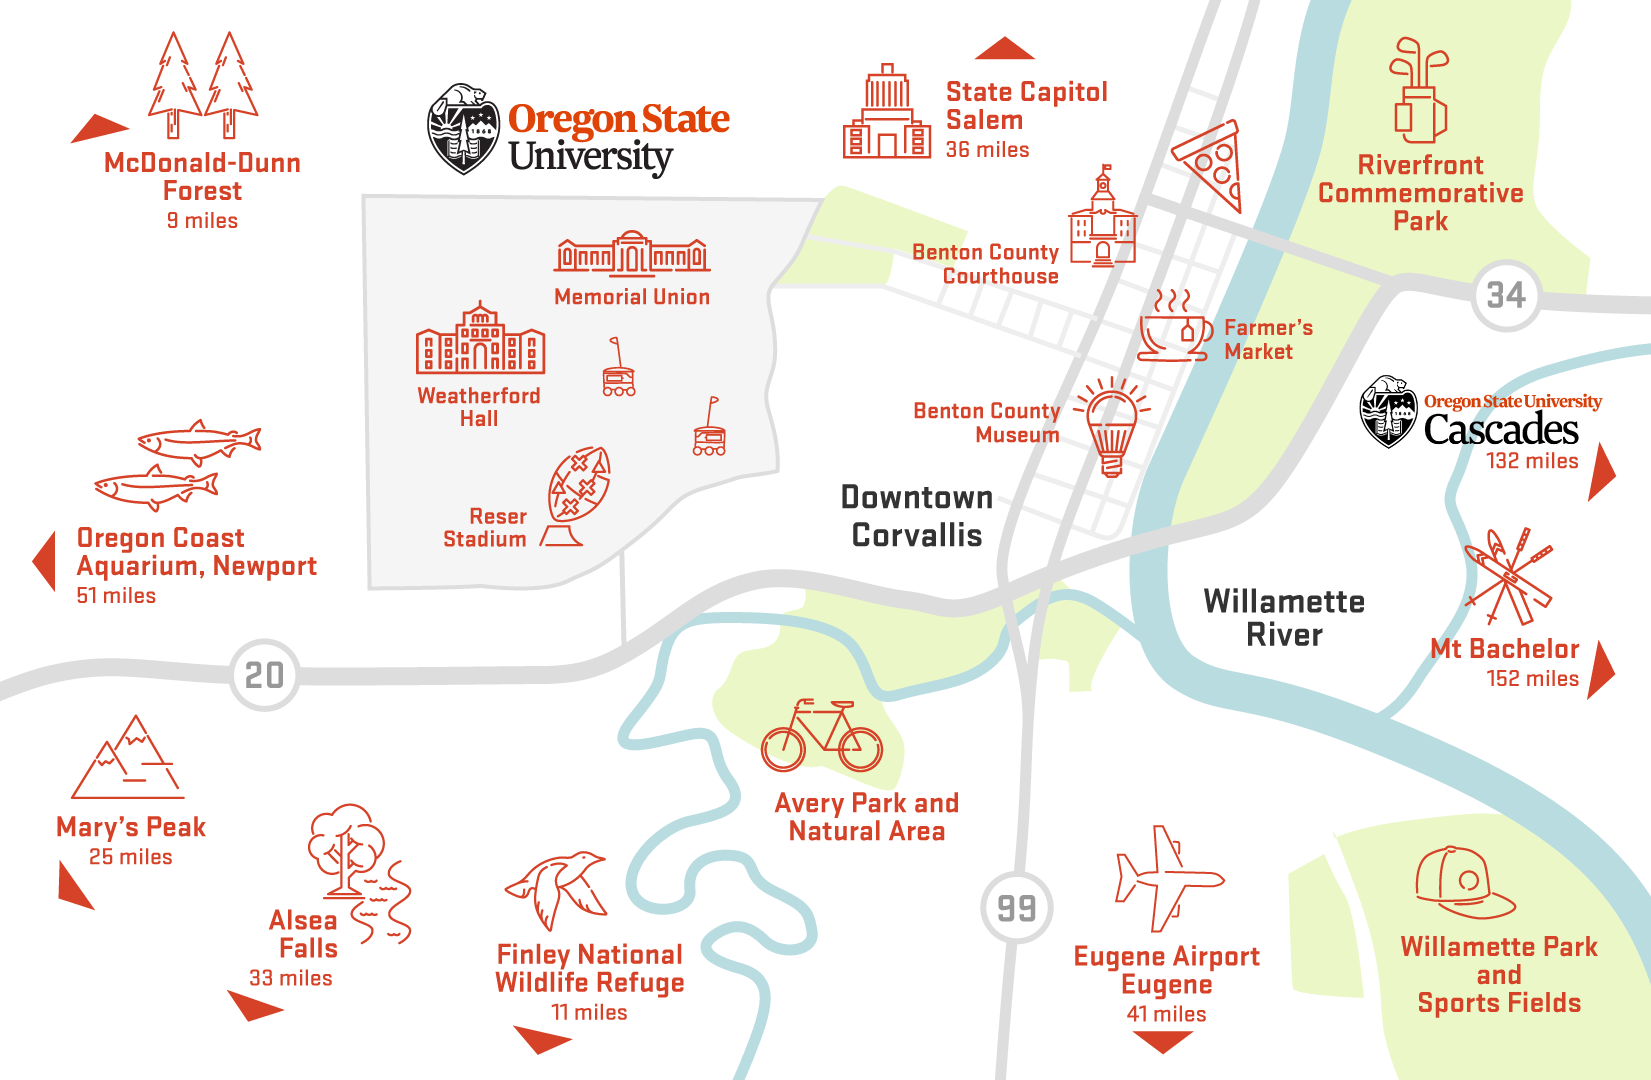 visitor map of oregon state university and corvallis area